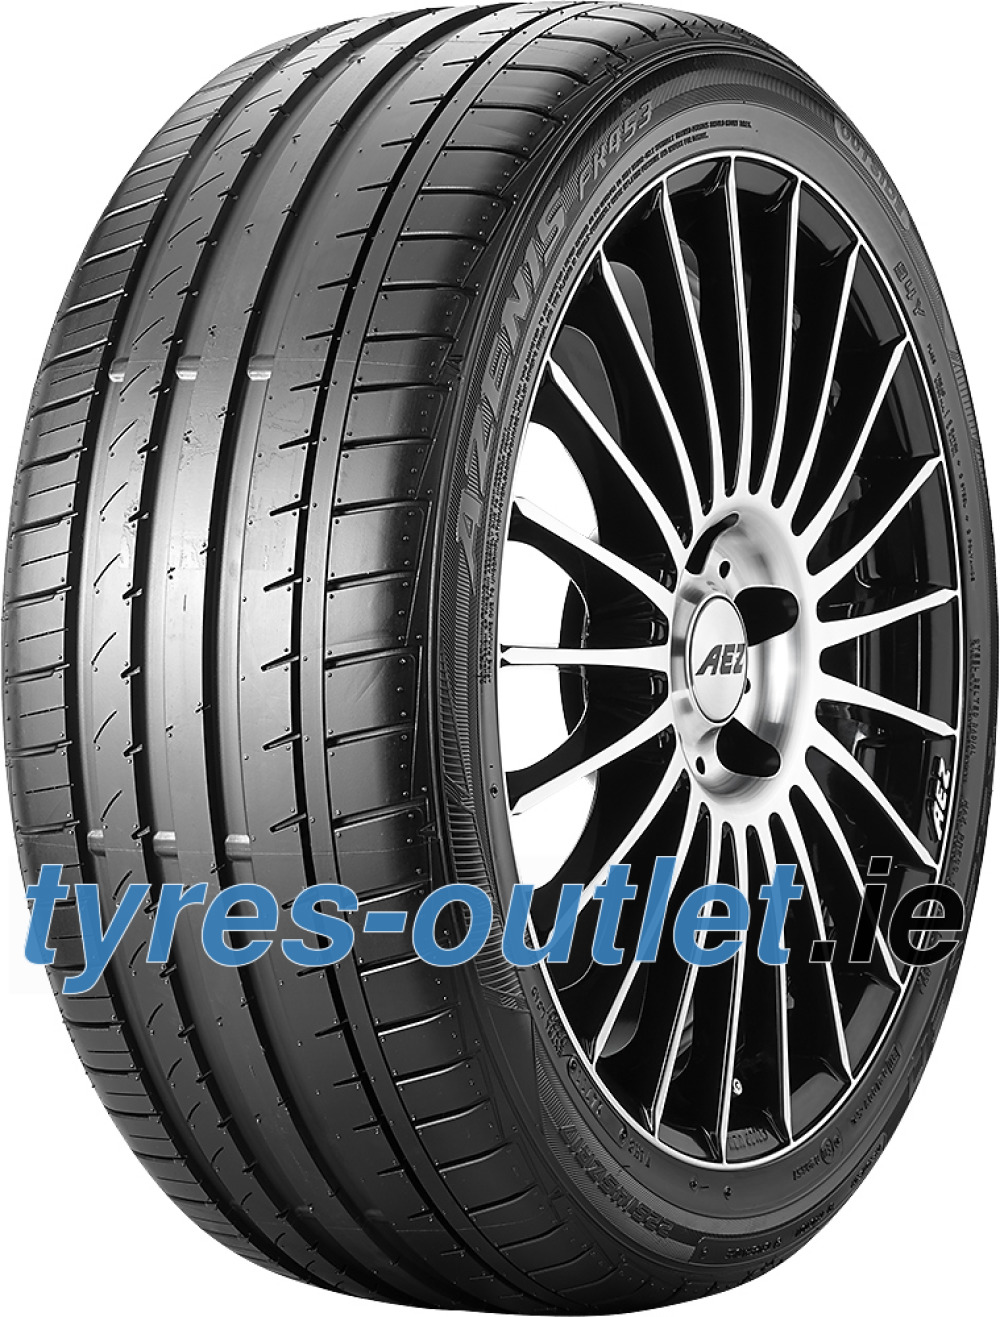 Falken Azenis FK453 ( 235/45 ZR18 98Y XL with rim protection (MFS) )